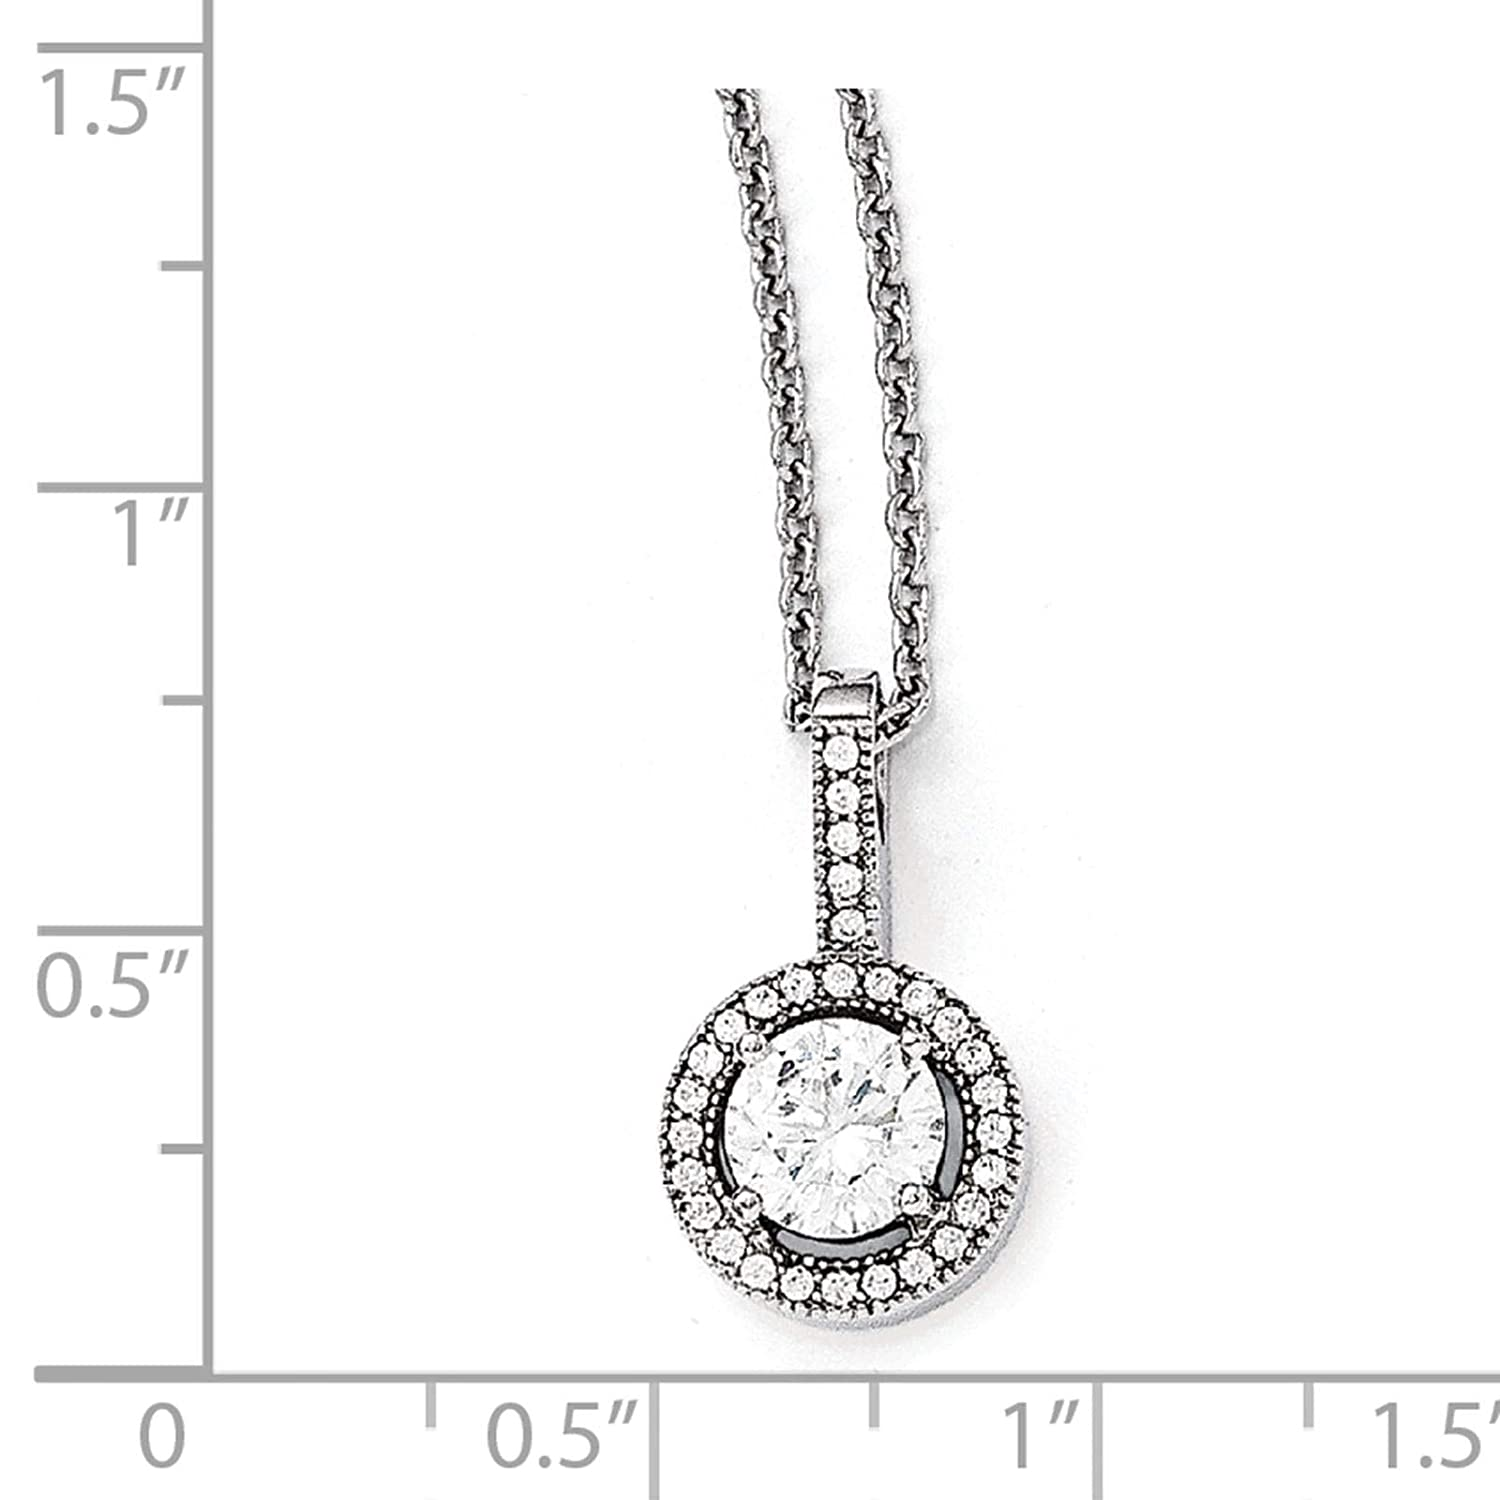 2 Extender Brilliant Embers Sterling Silver Rhodium-plated Polished CZ Pendant Necklace 18